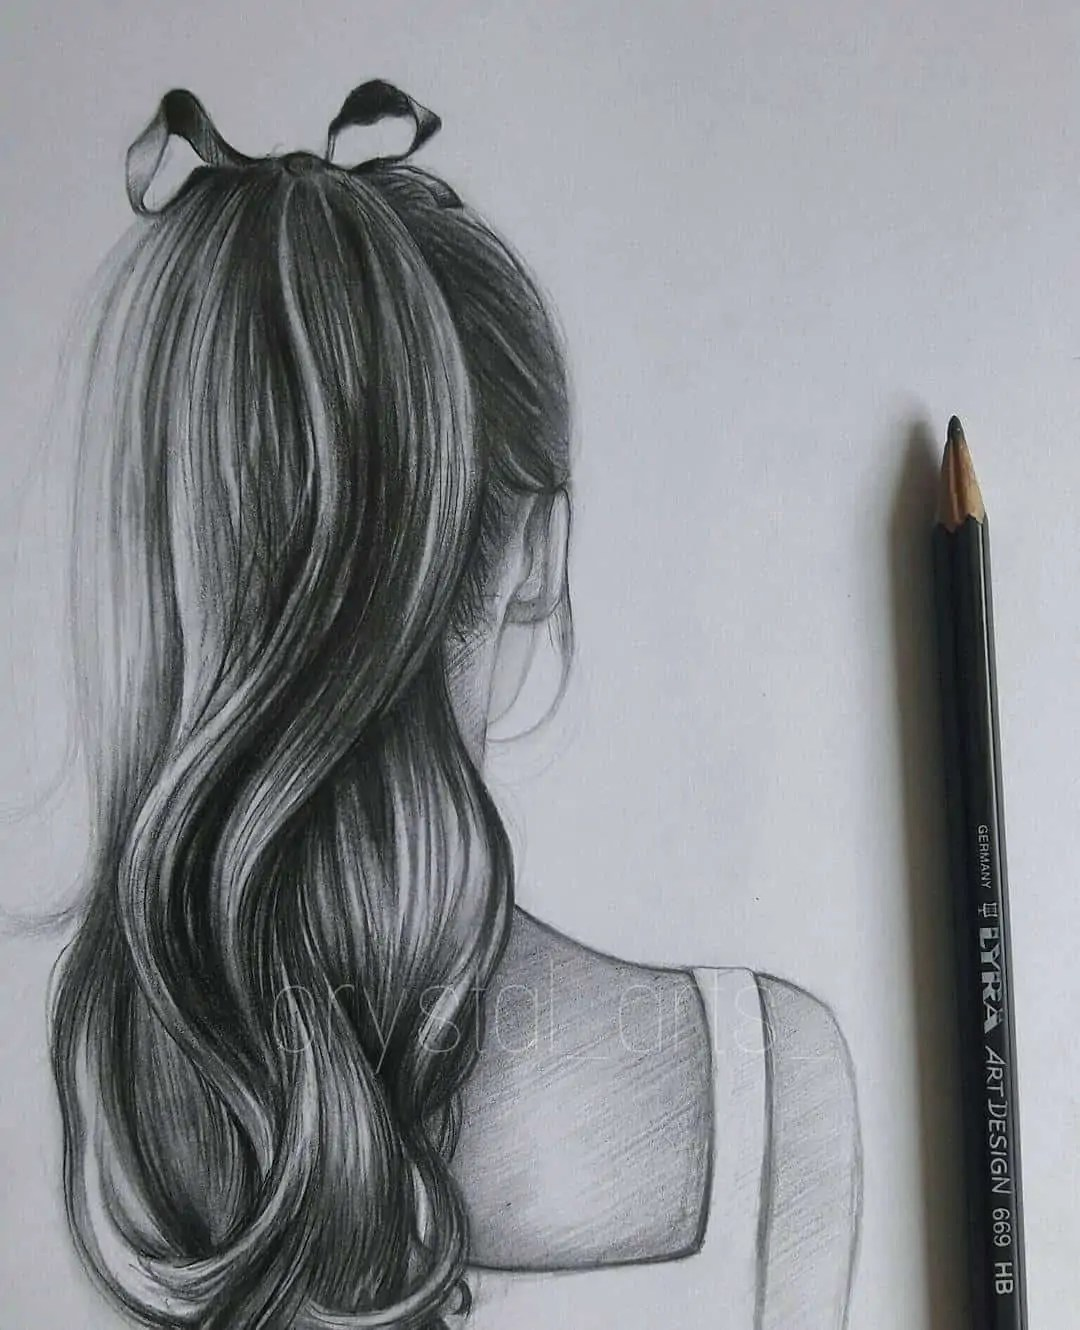 100+ Stunning Realistic Portrait Drawings 347